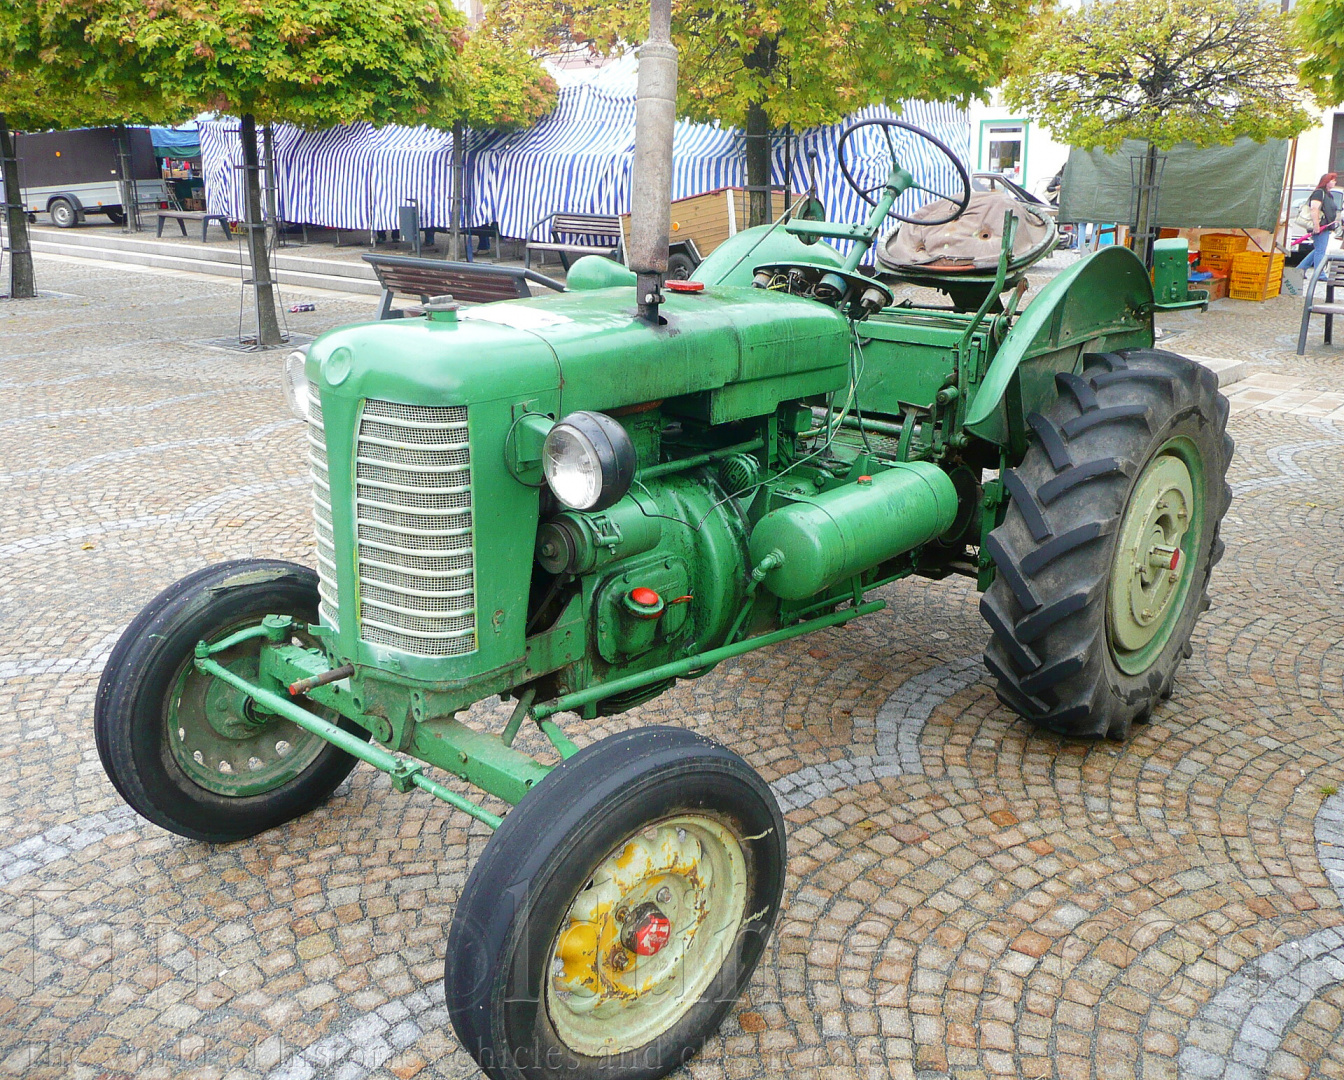 Sale additionally 3286 1950 Zetor 25 furthermore 1264190291 besides David Beckham On Sexiest Man Award Says He Thought He Was Past It likewise Talented 15 Year Old Designs Fictional. on old car type z